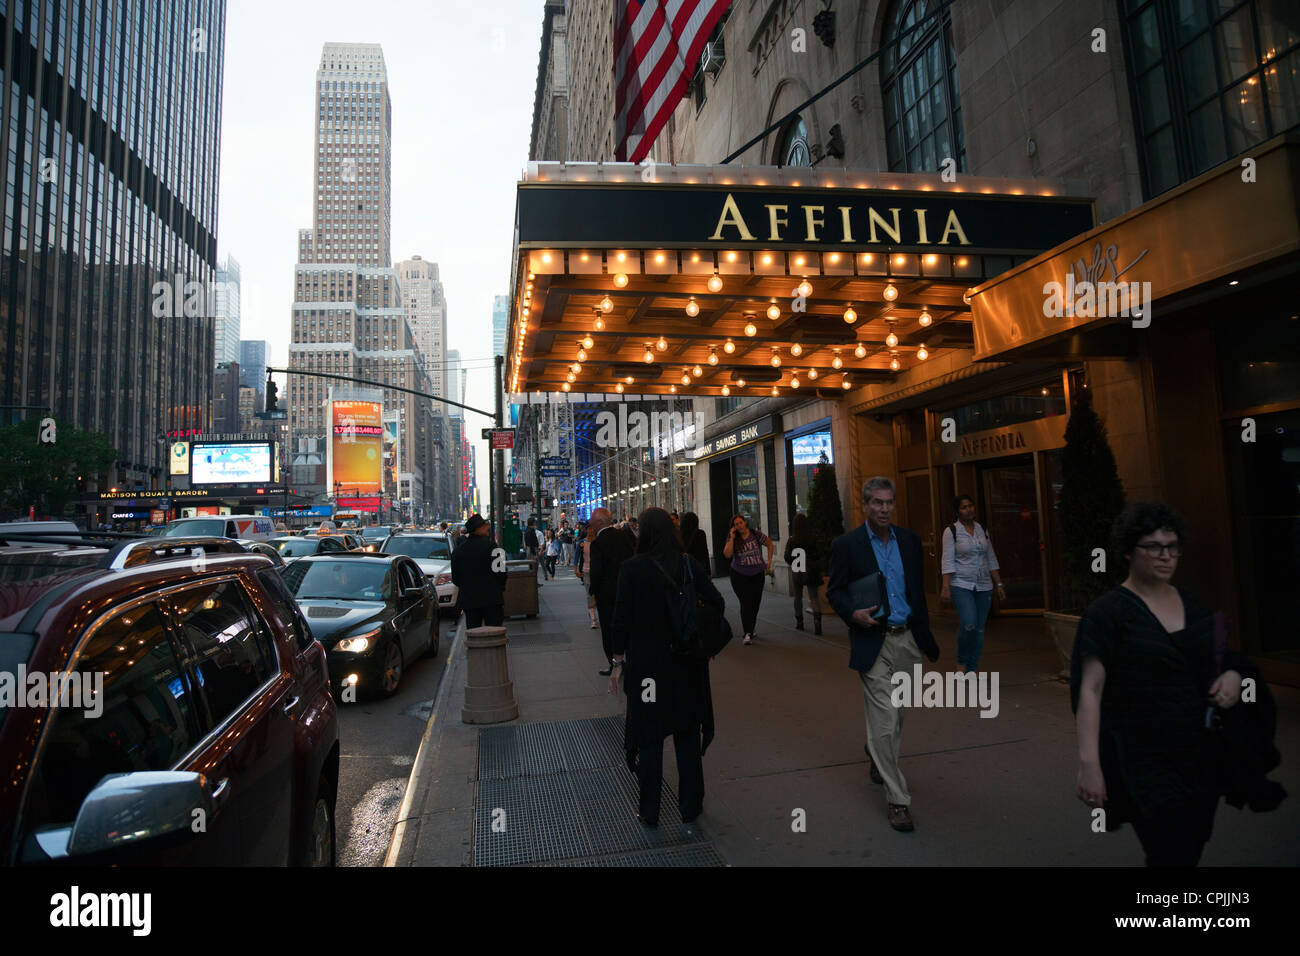 new york city affinia manhattan building outside on 7th avenue at